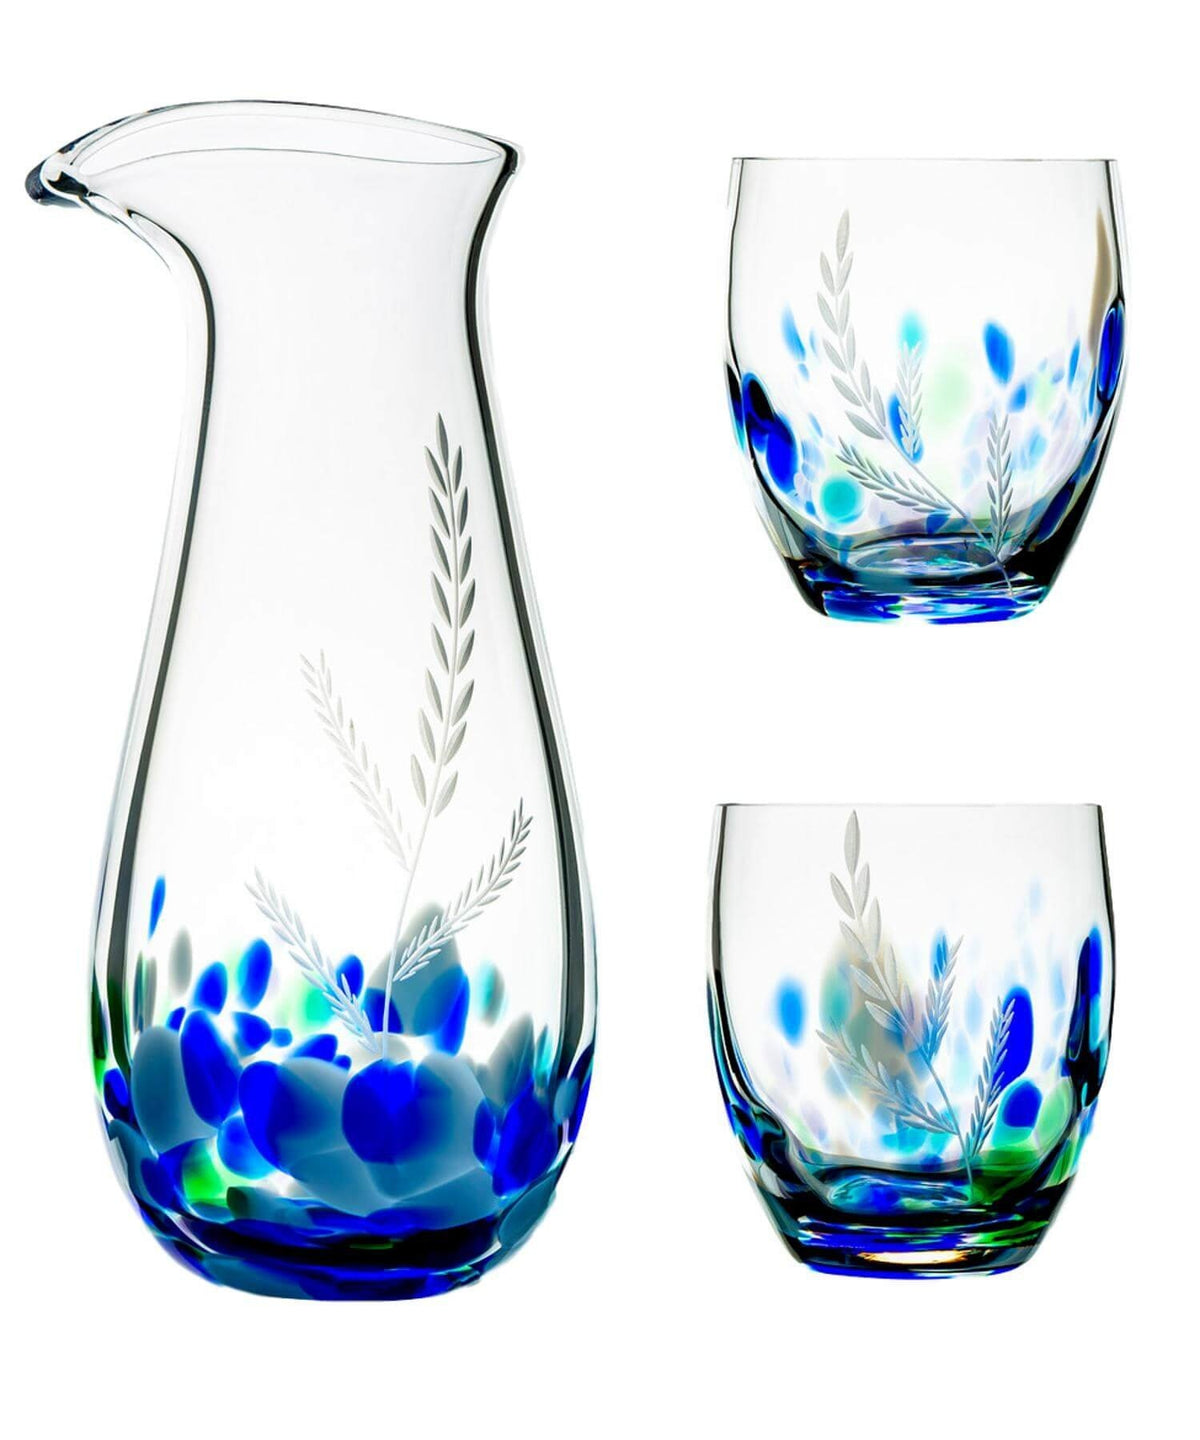 Wild Atlantic Way Carafe & Glass Set - [The Irish Handmade Glass Company] - Irish Crystal & Glass - Irish Gifts